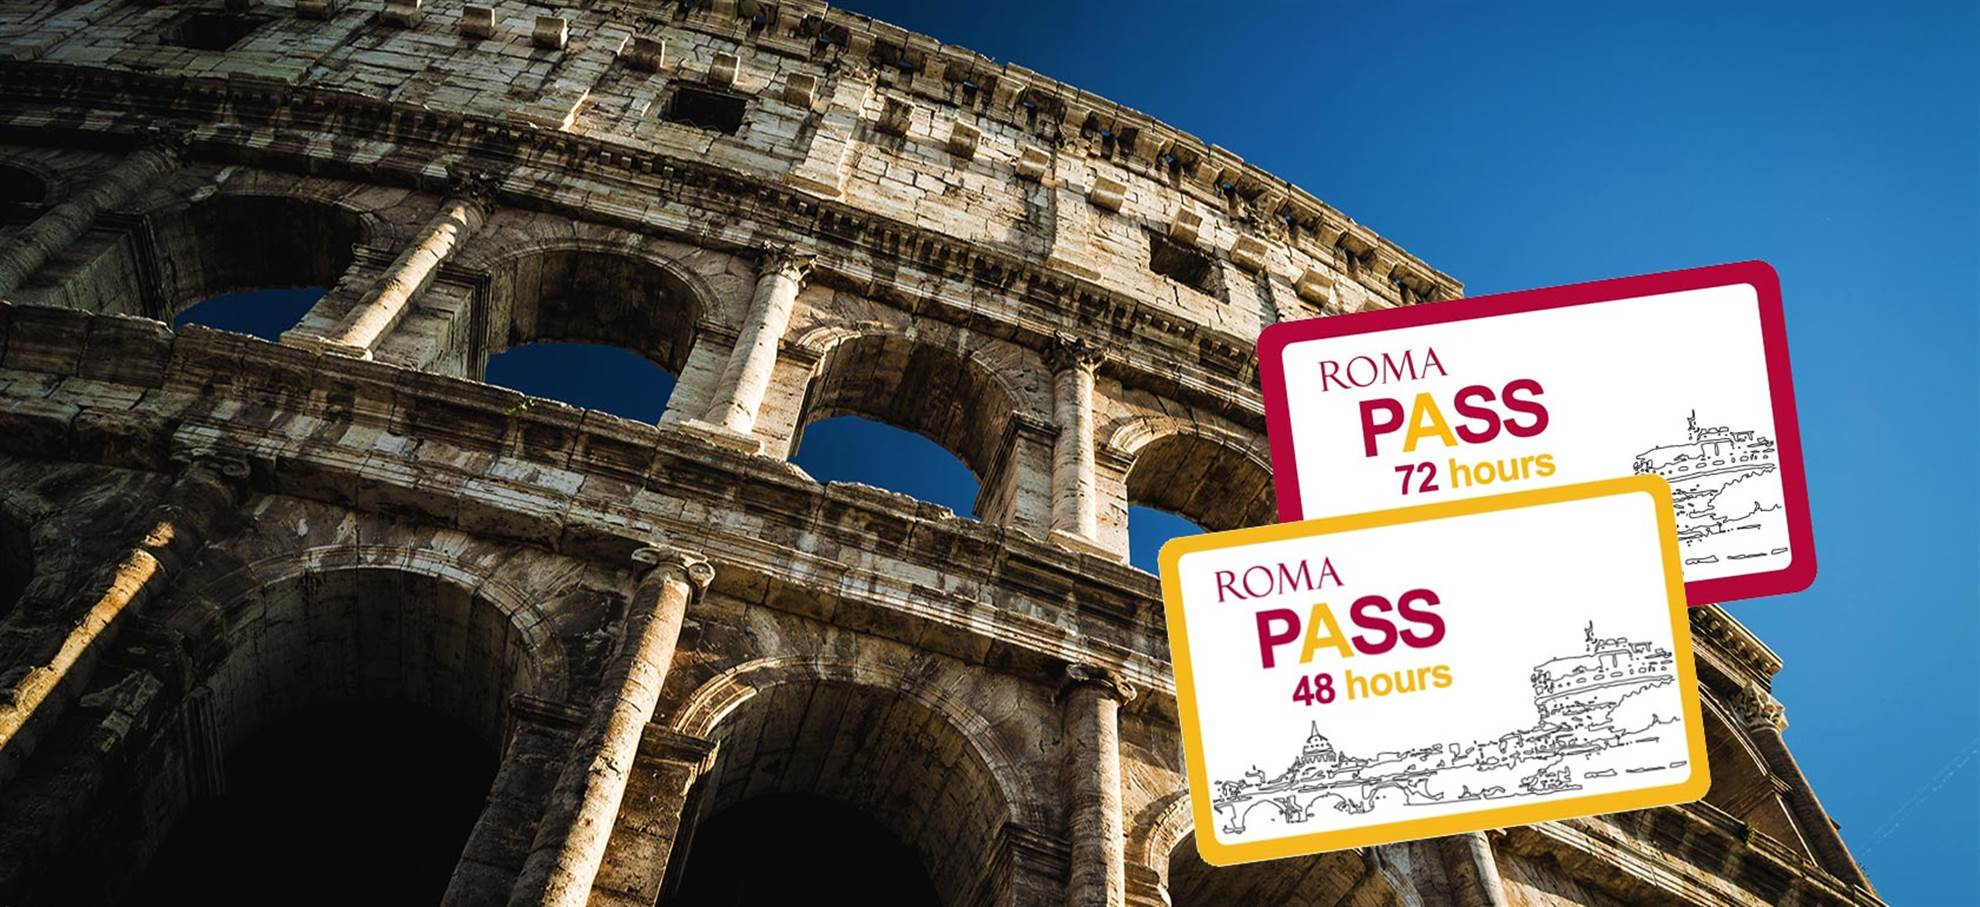 Roma pass (Optional St. Peter's Skip the line tickets)